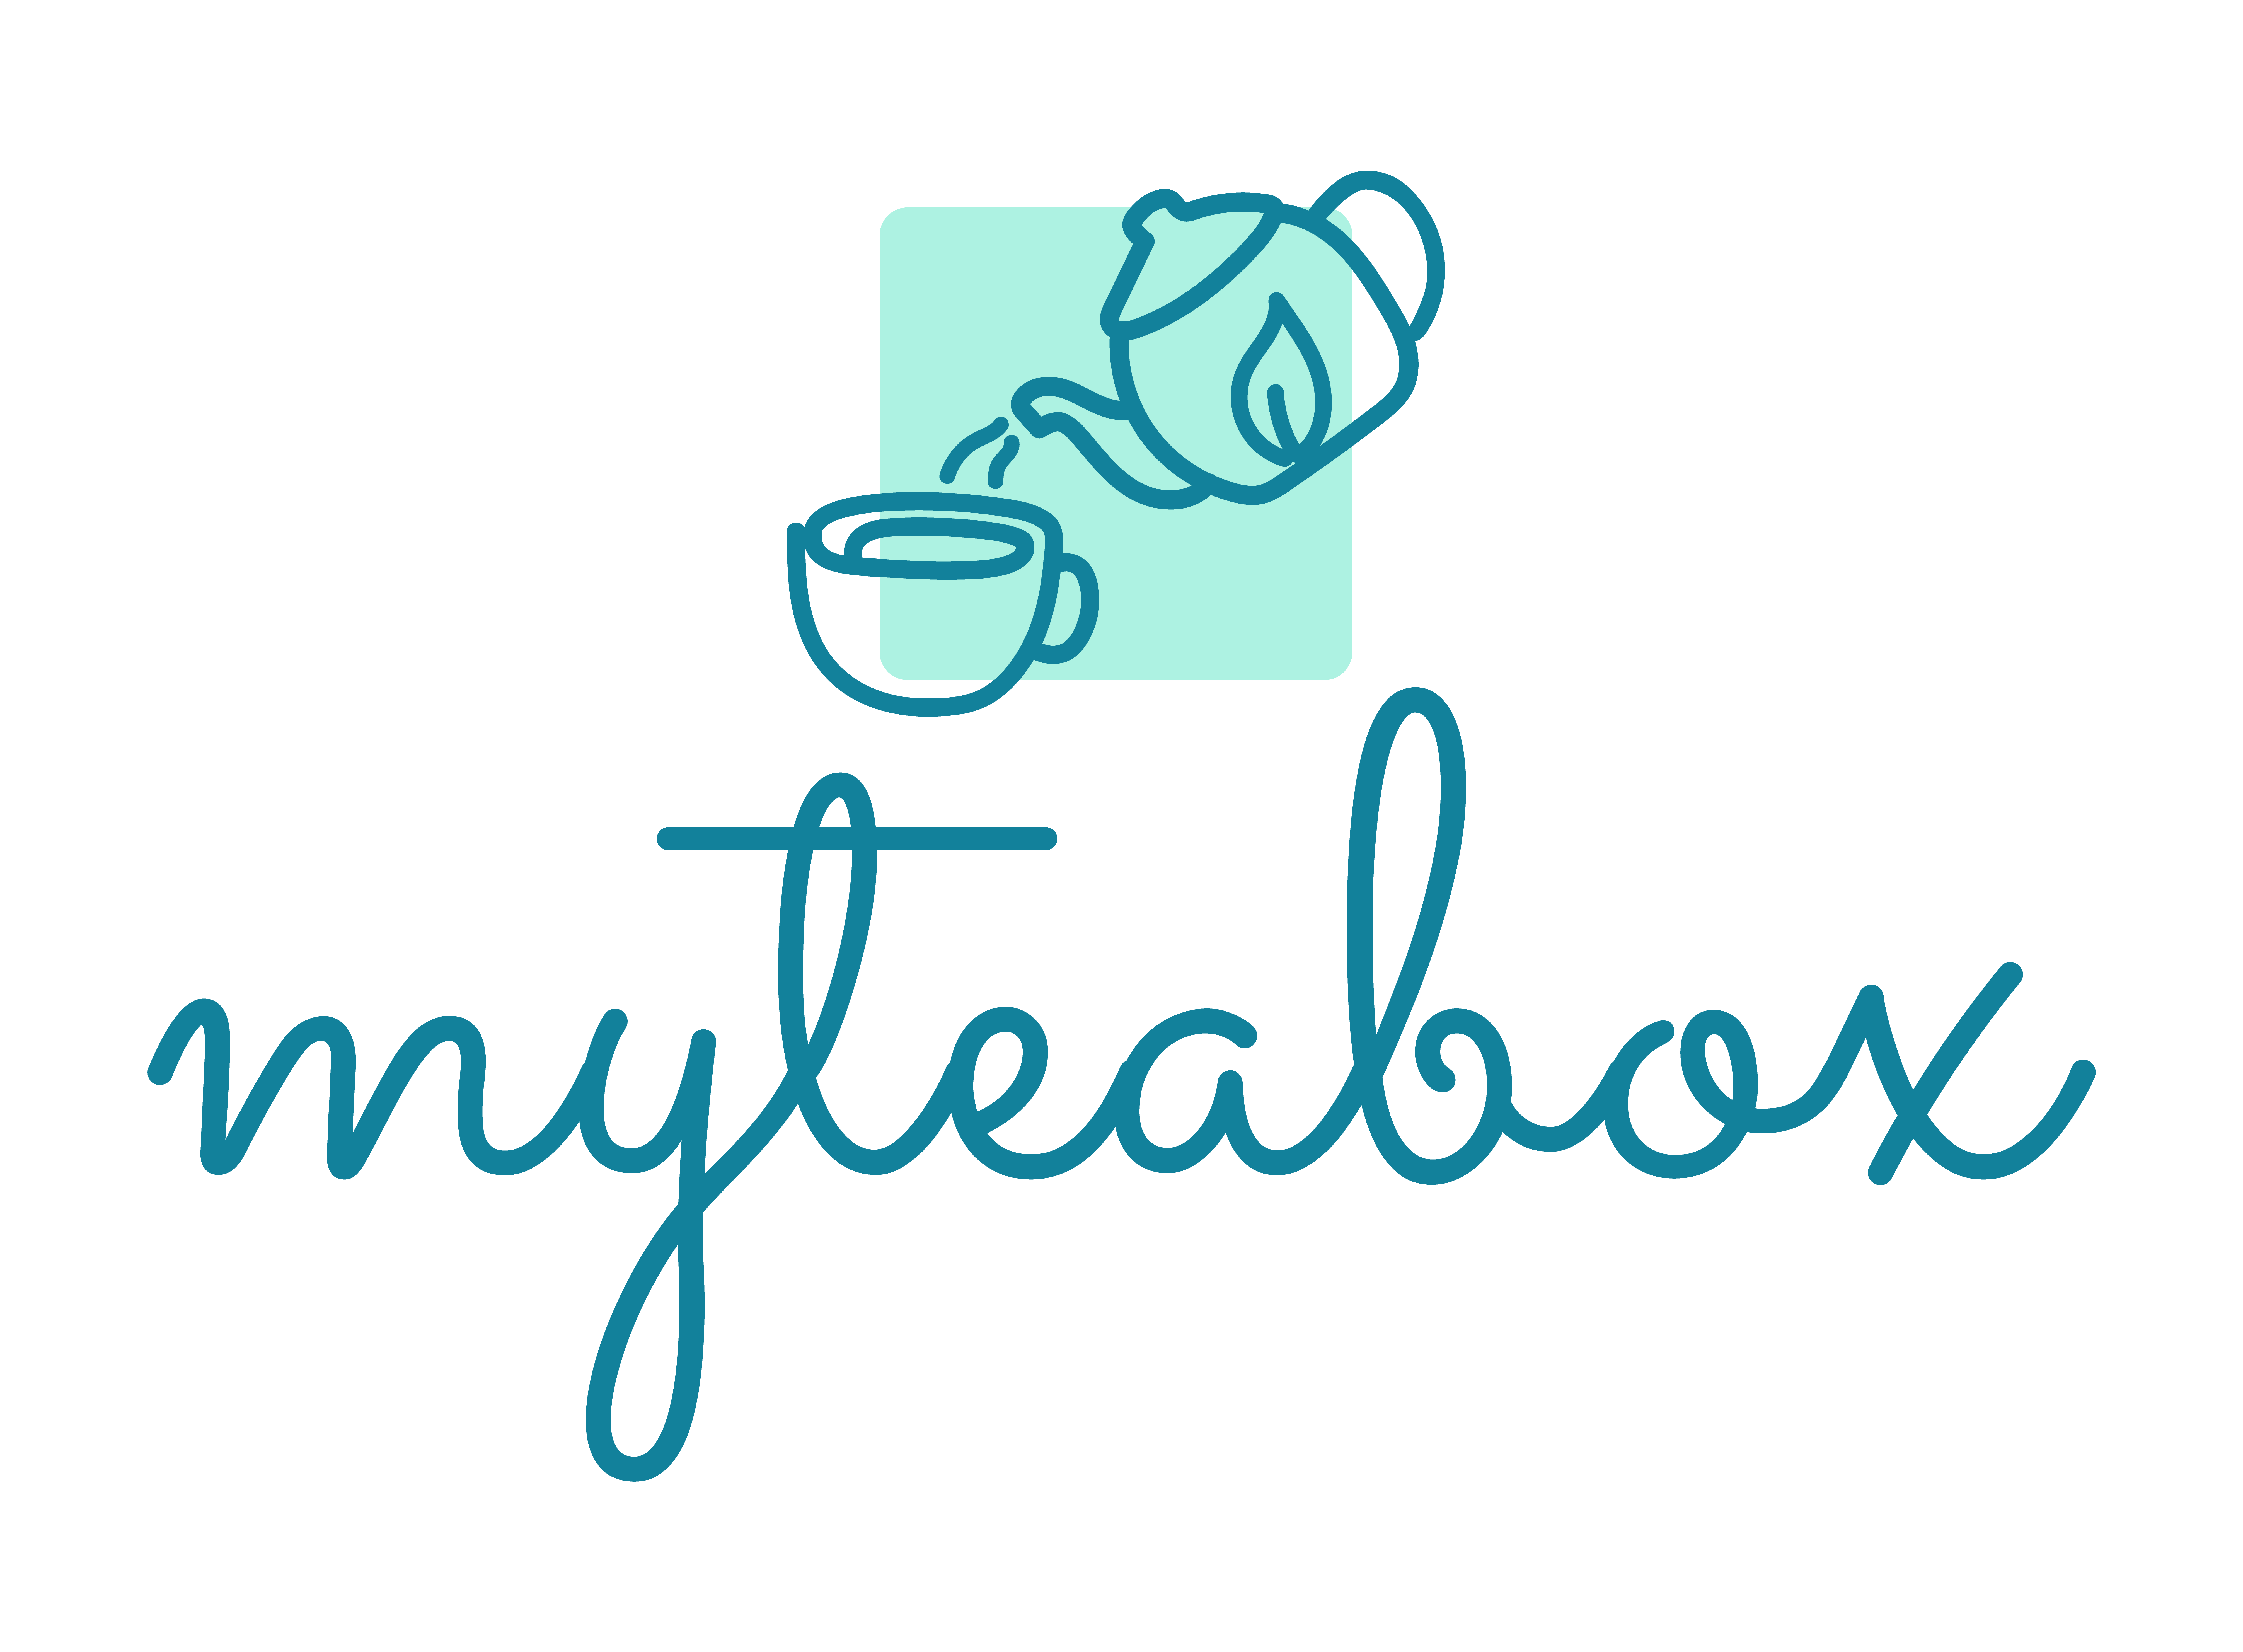 myteabox.mu